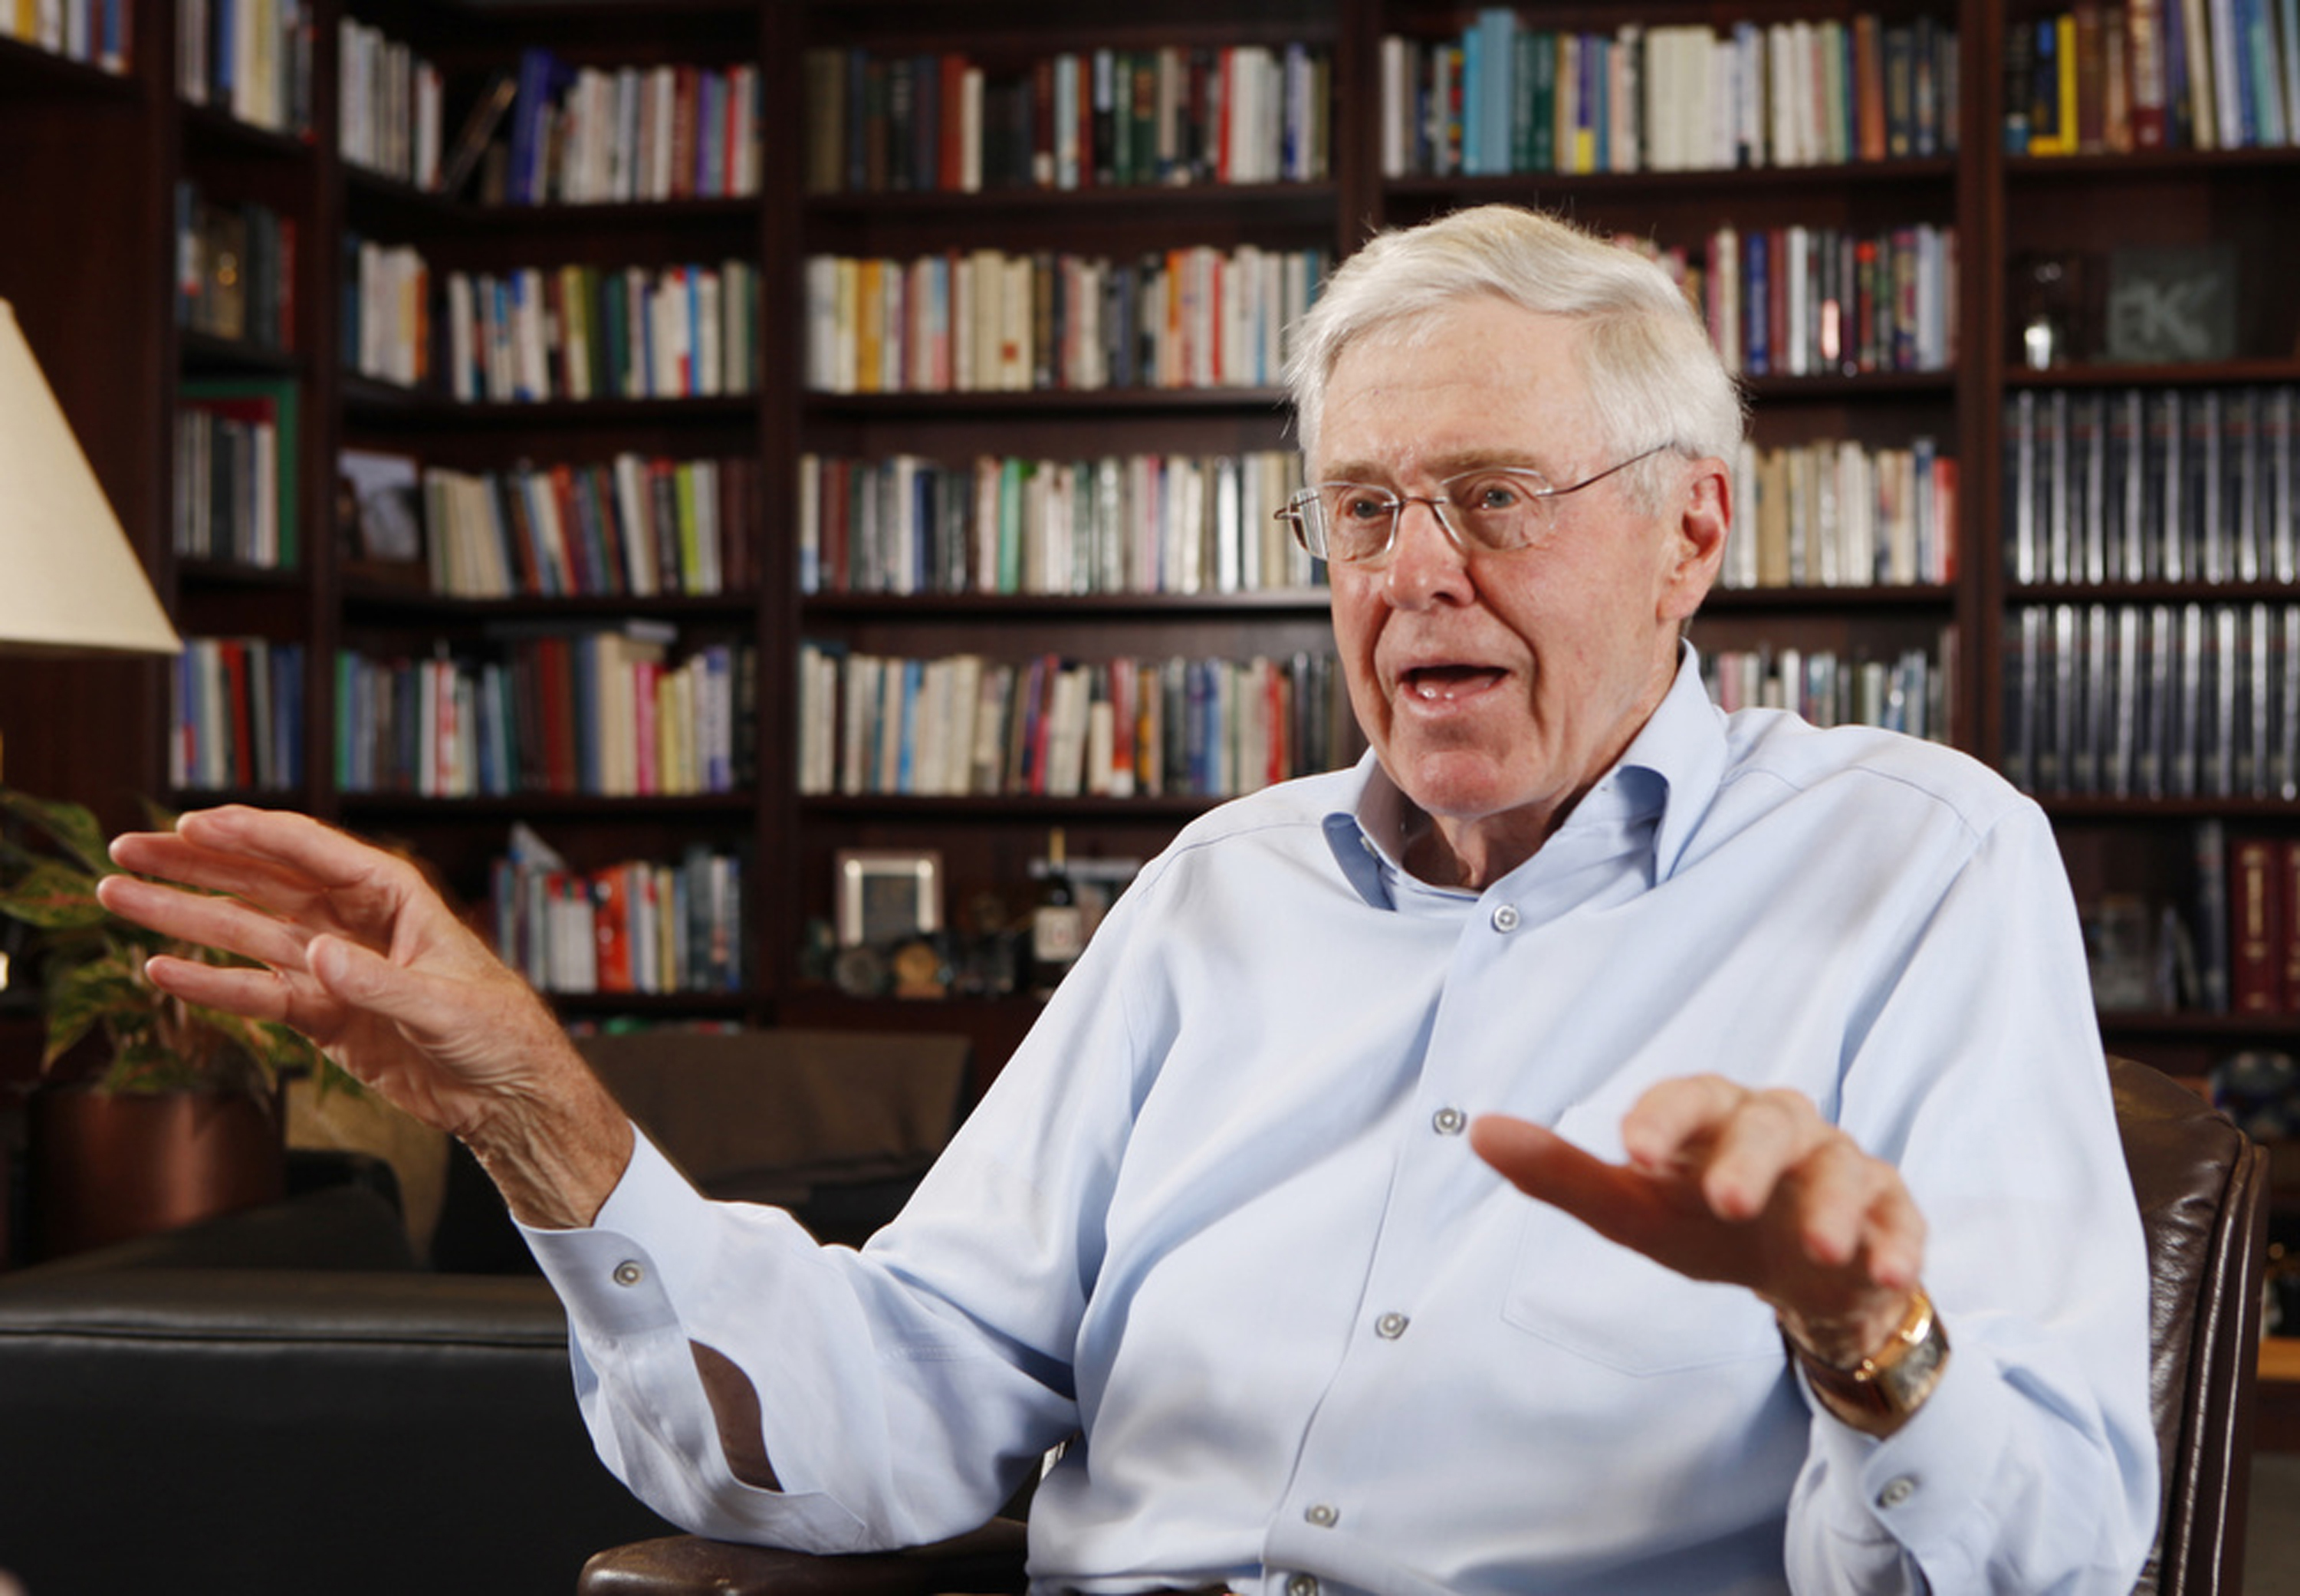 Billionaire Koch Brothers Exclude Trump from Its Bankrolling of Conservative Causes